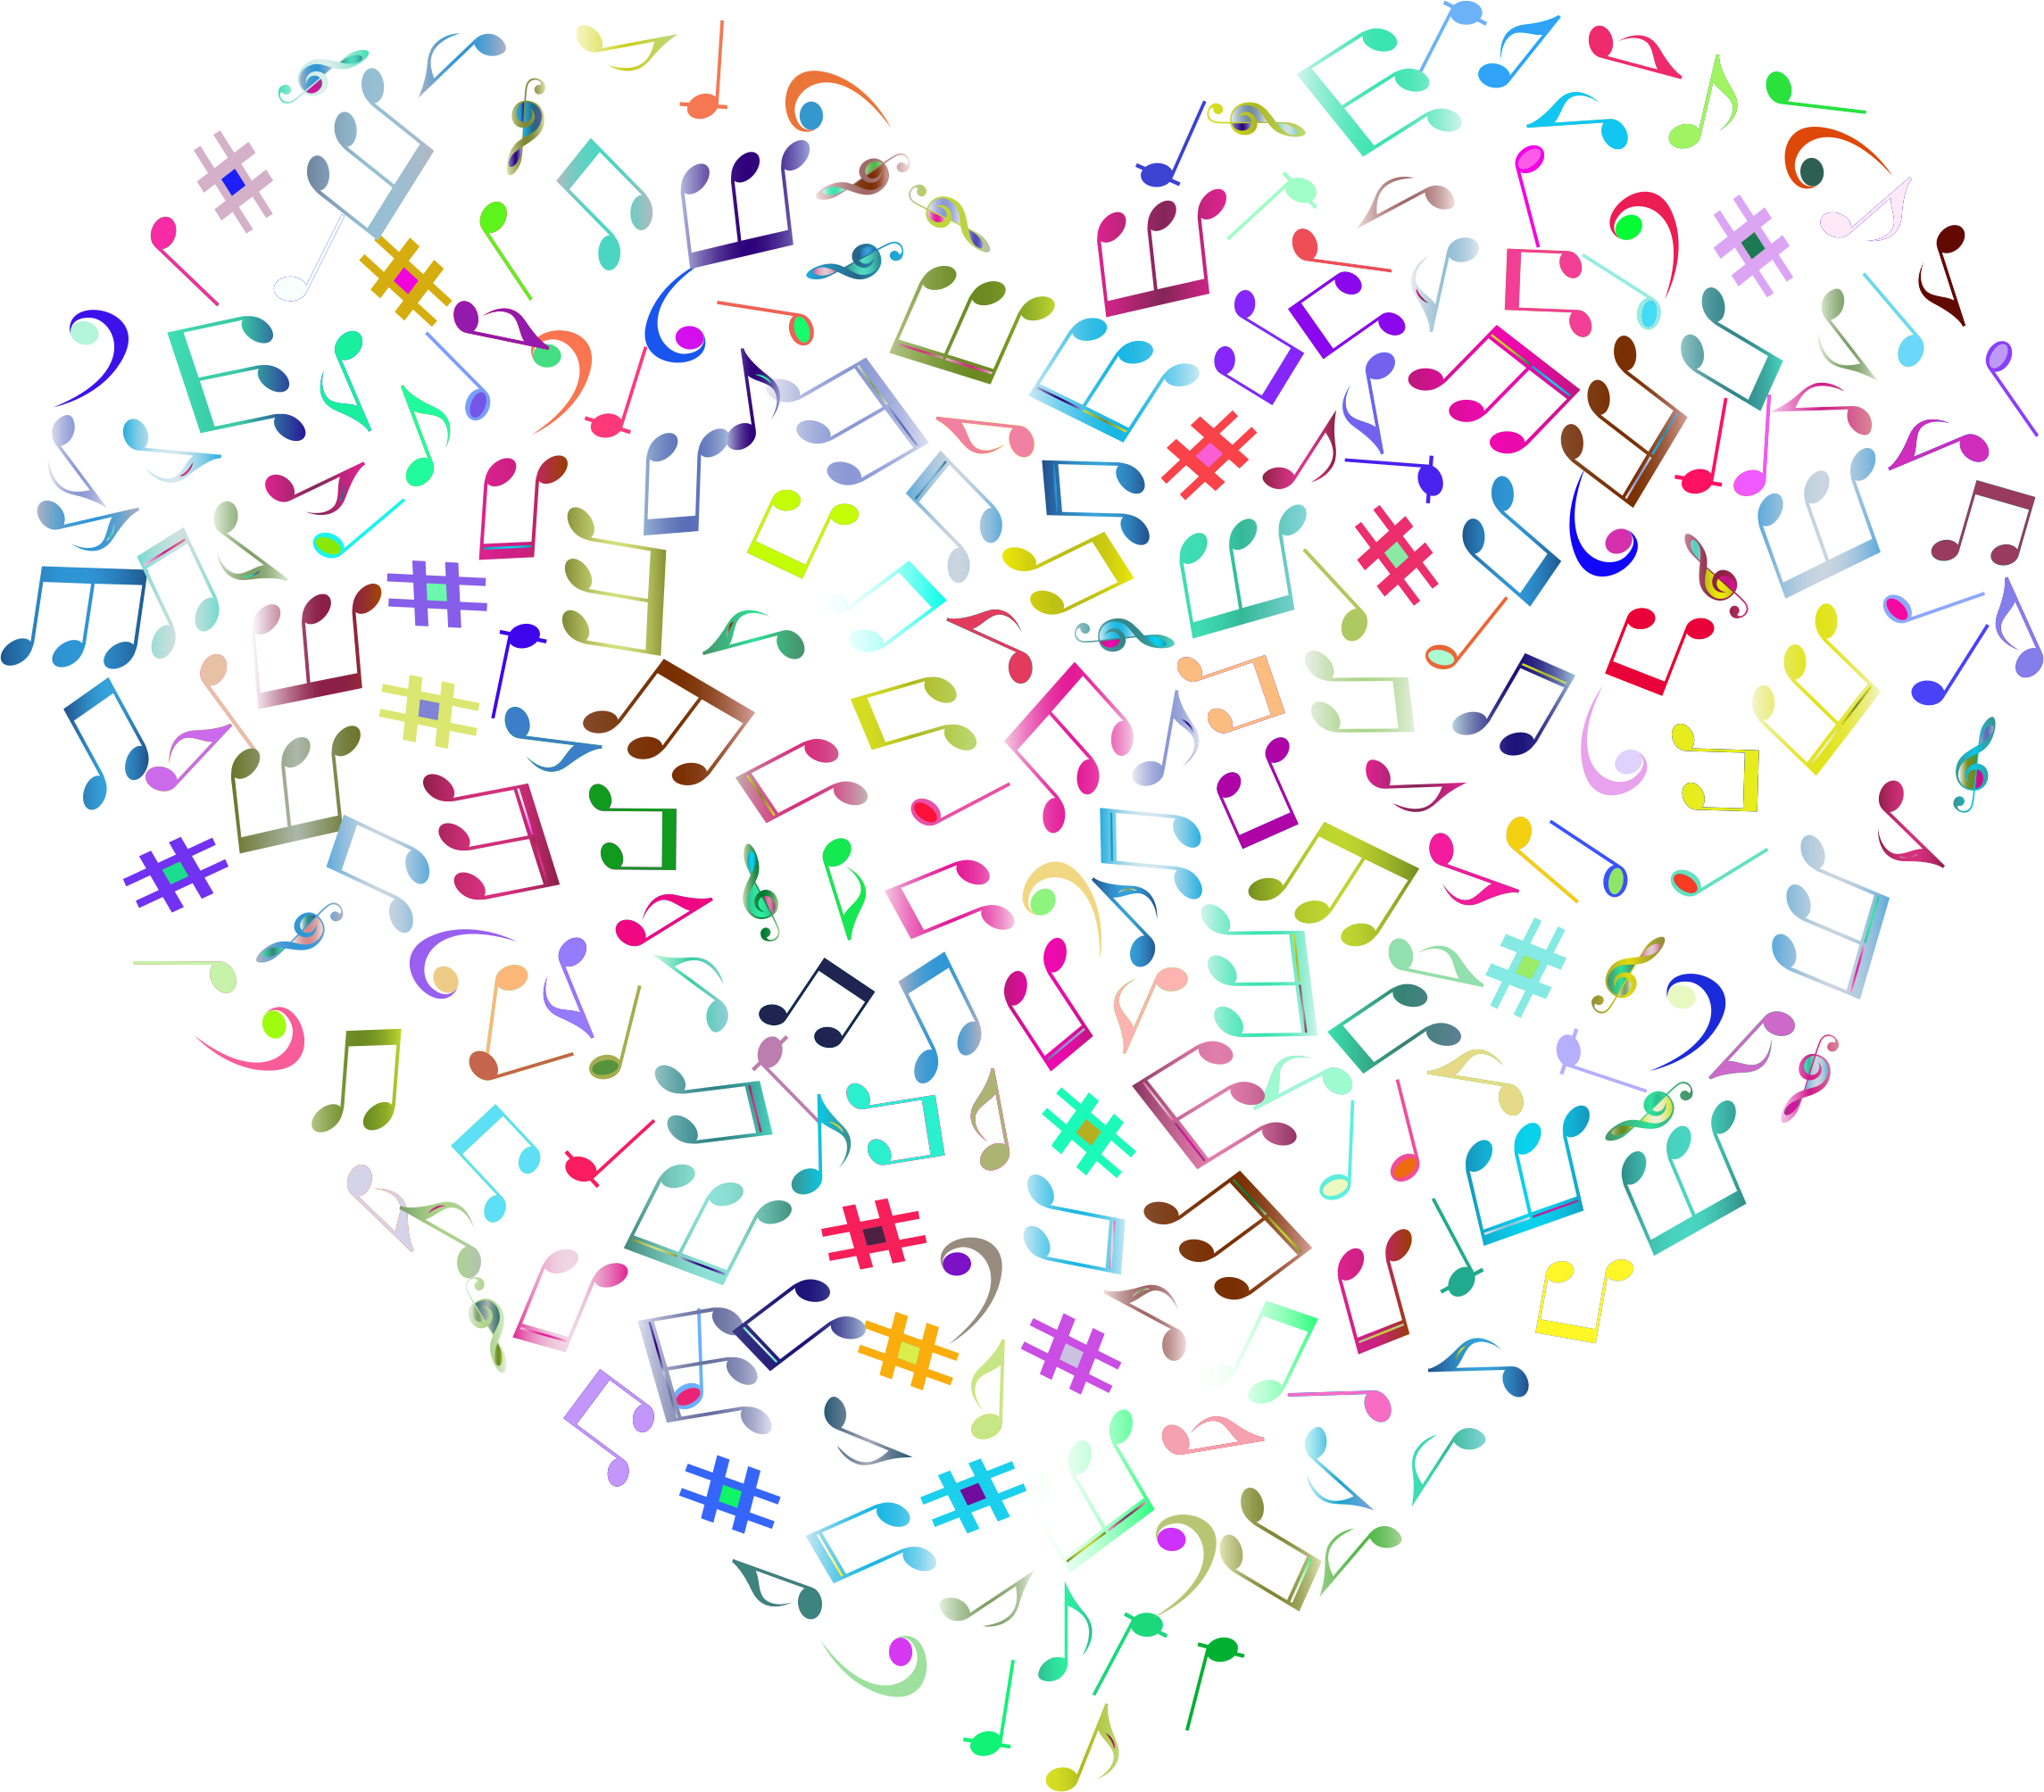 Prismatic Musical Heart 4 2 No Background by GDJ